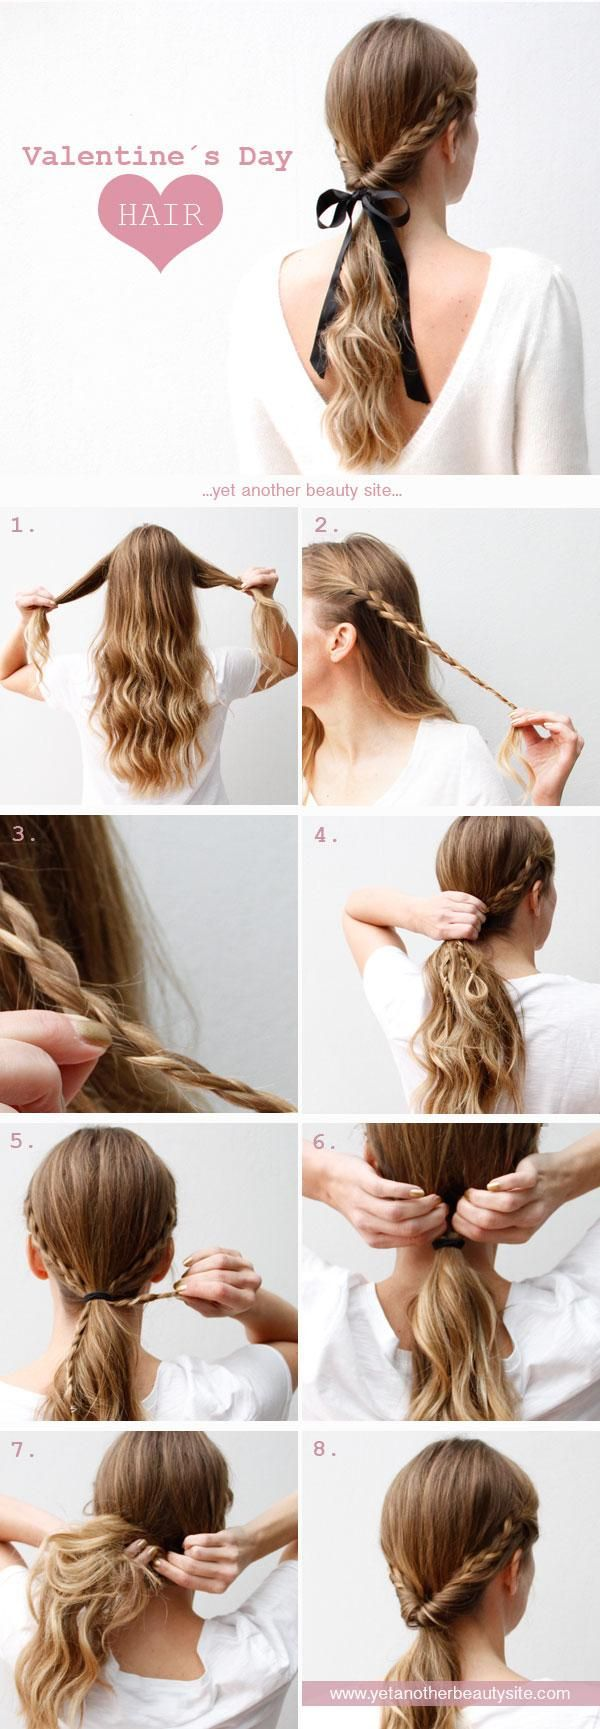 Pin by shelley uerata on channy pinterest hair style hair